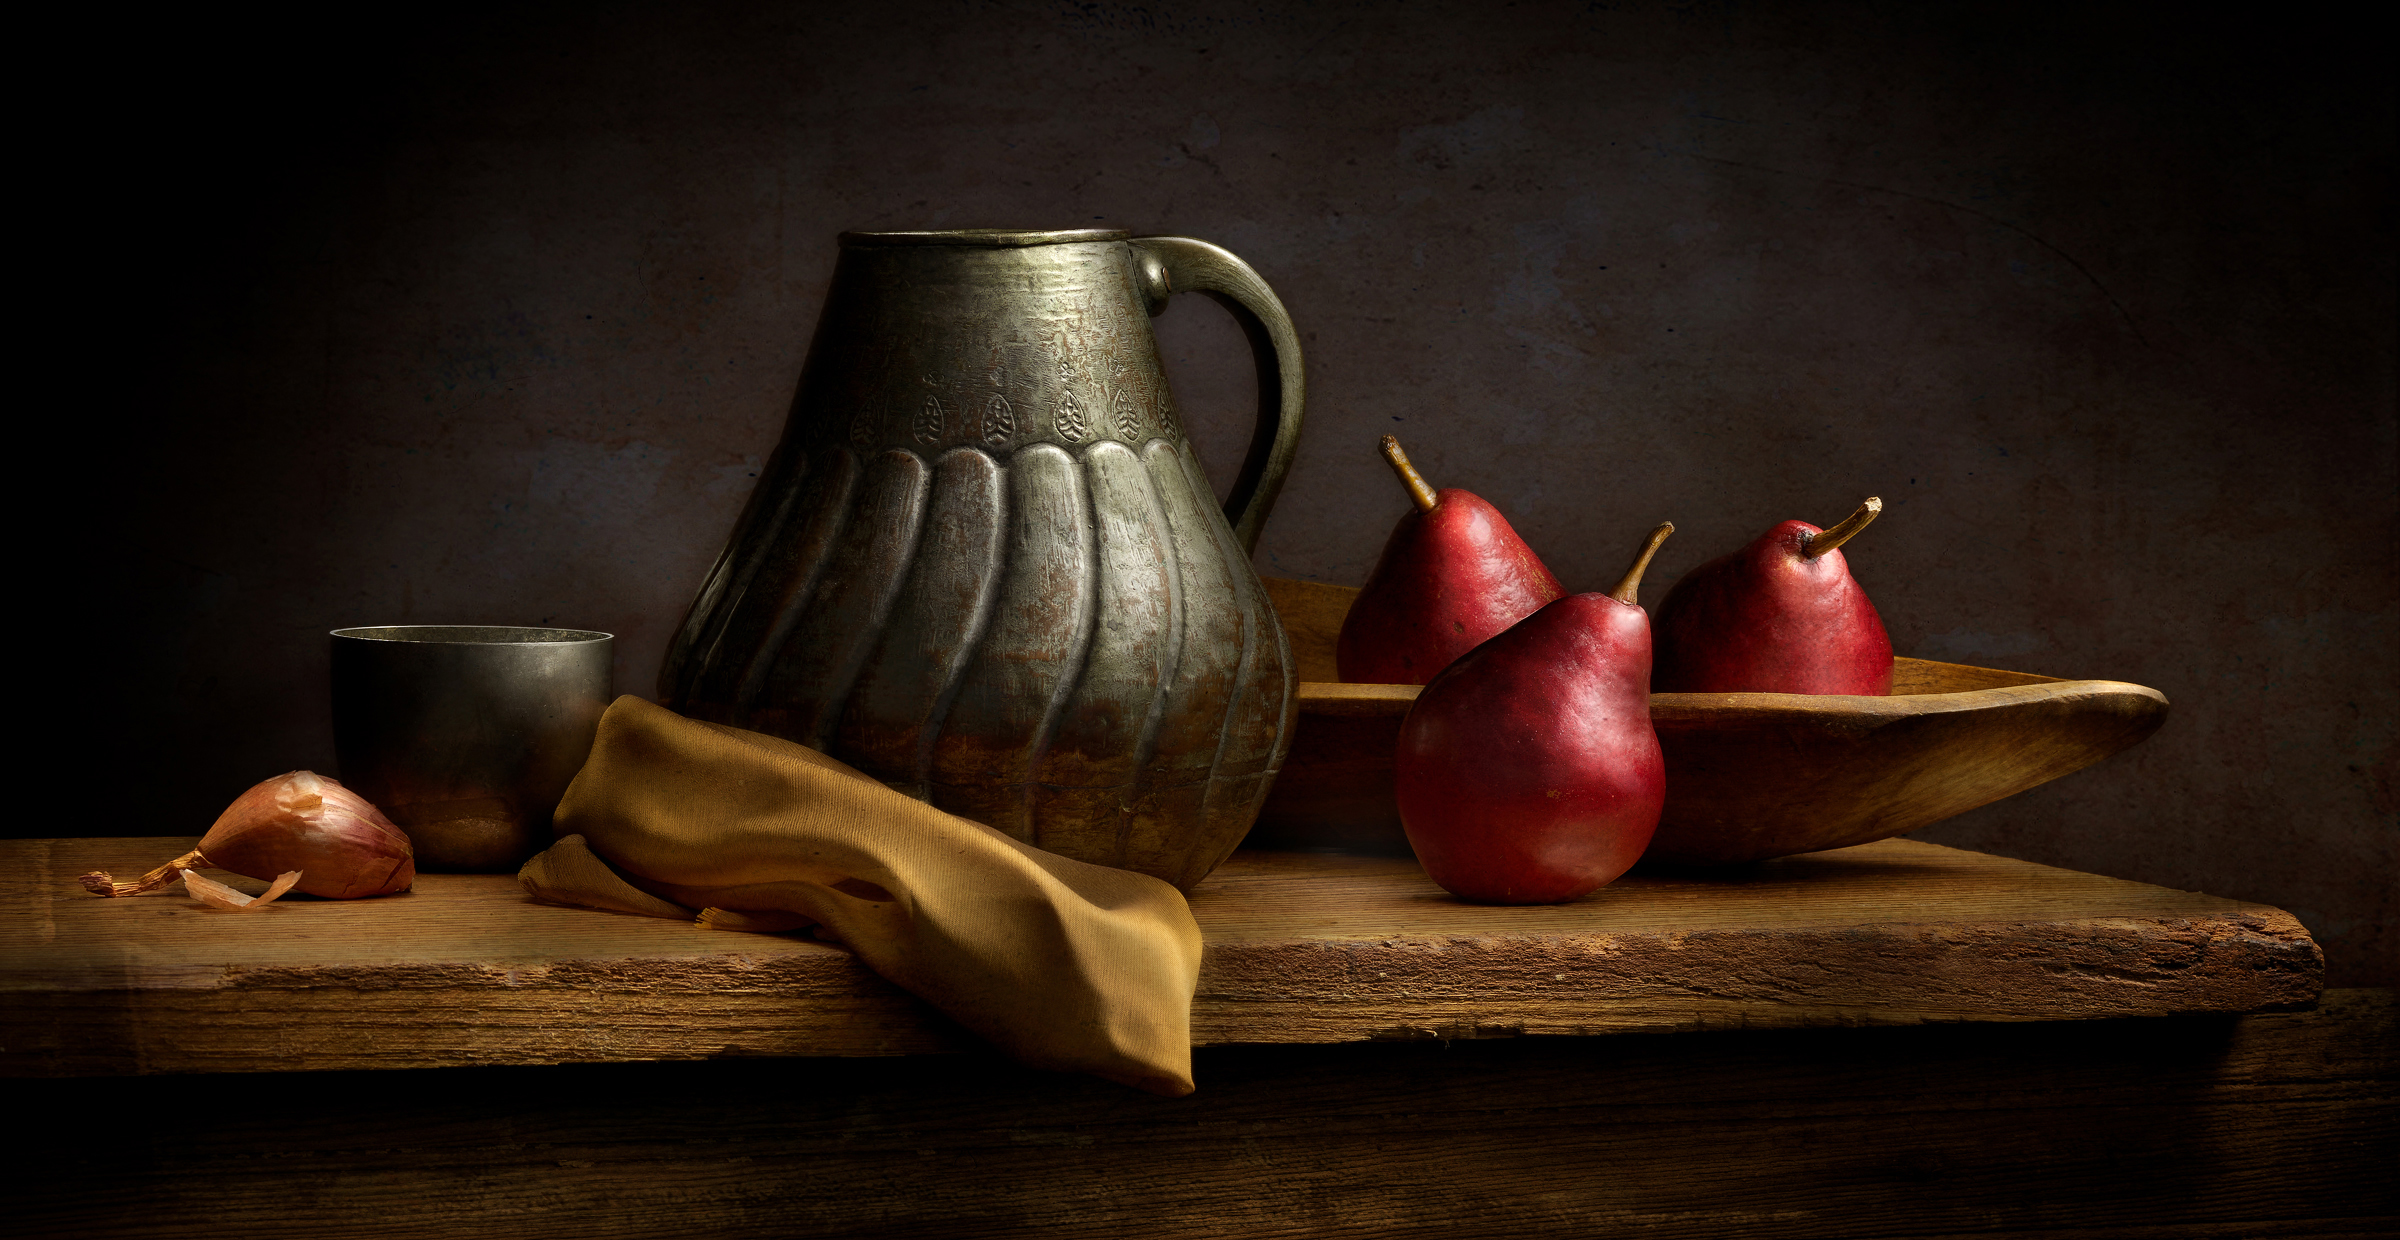 Still life paintings and drawings